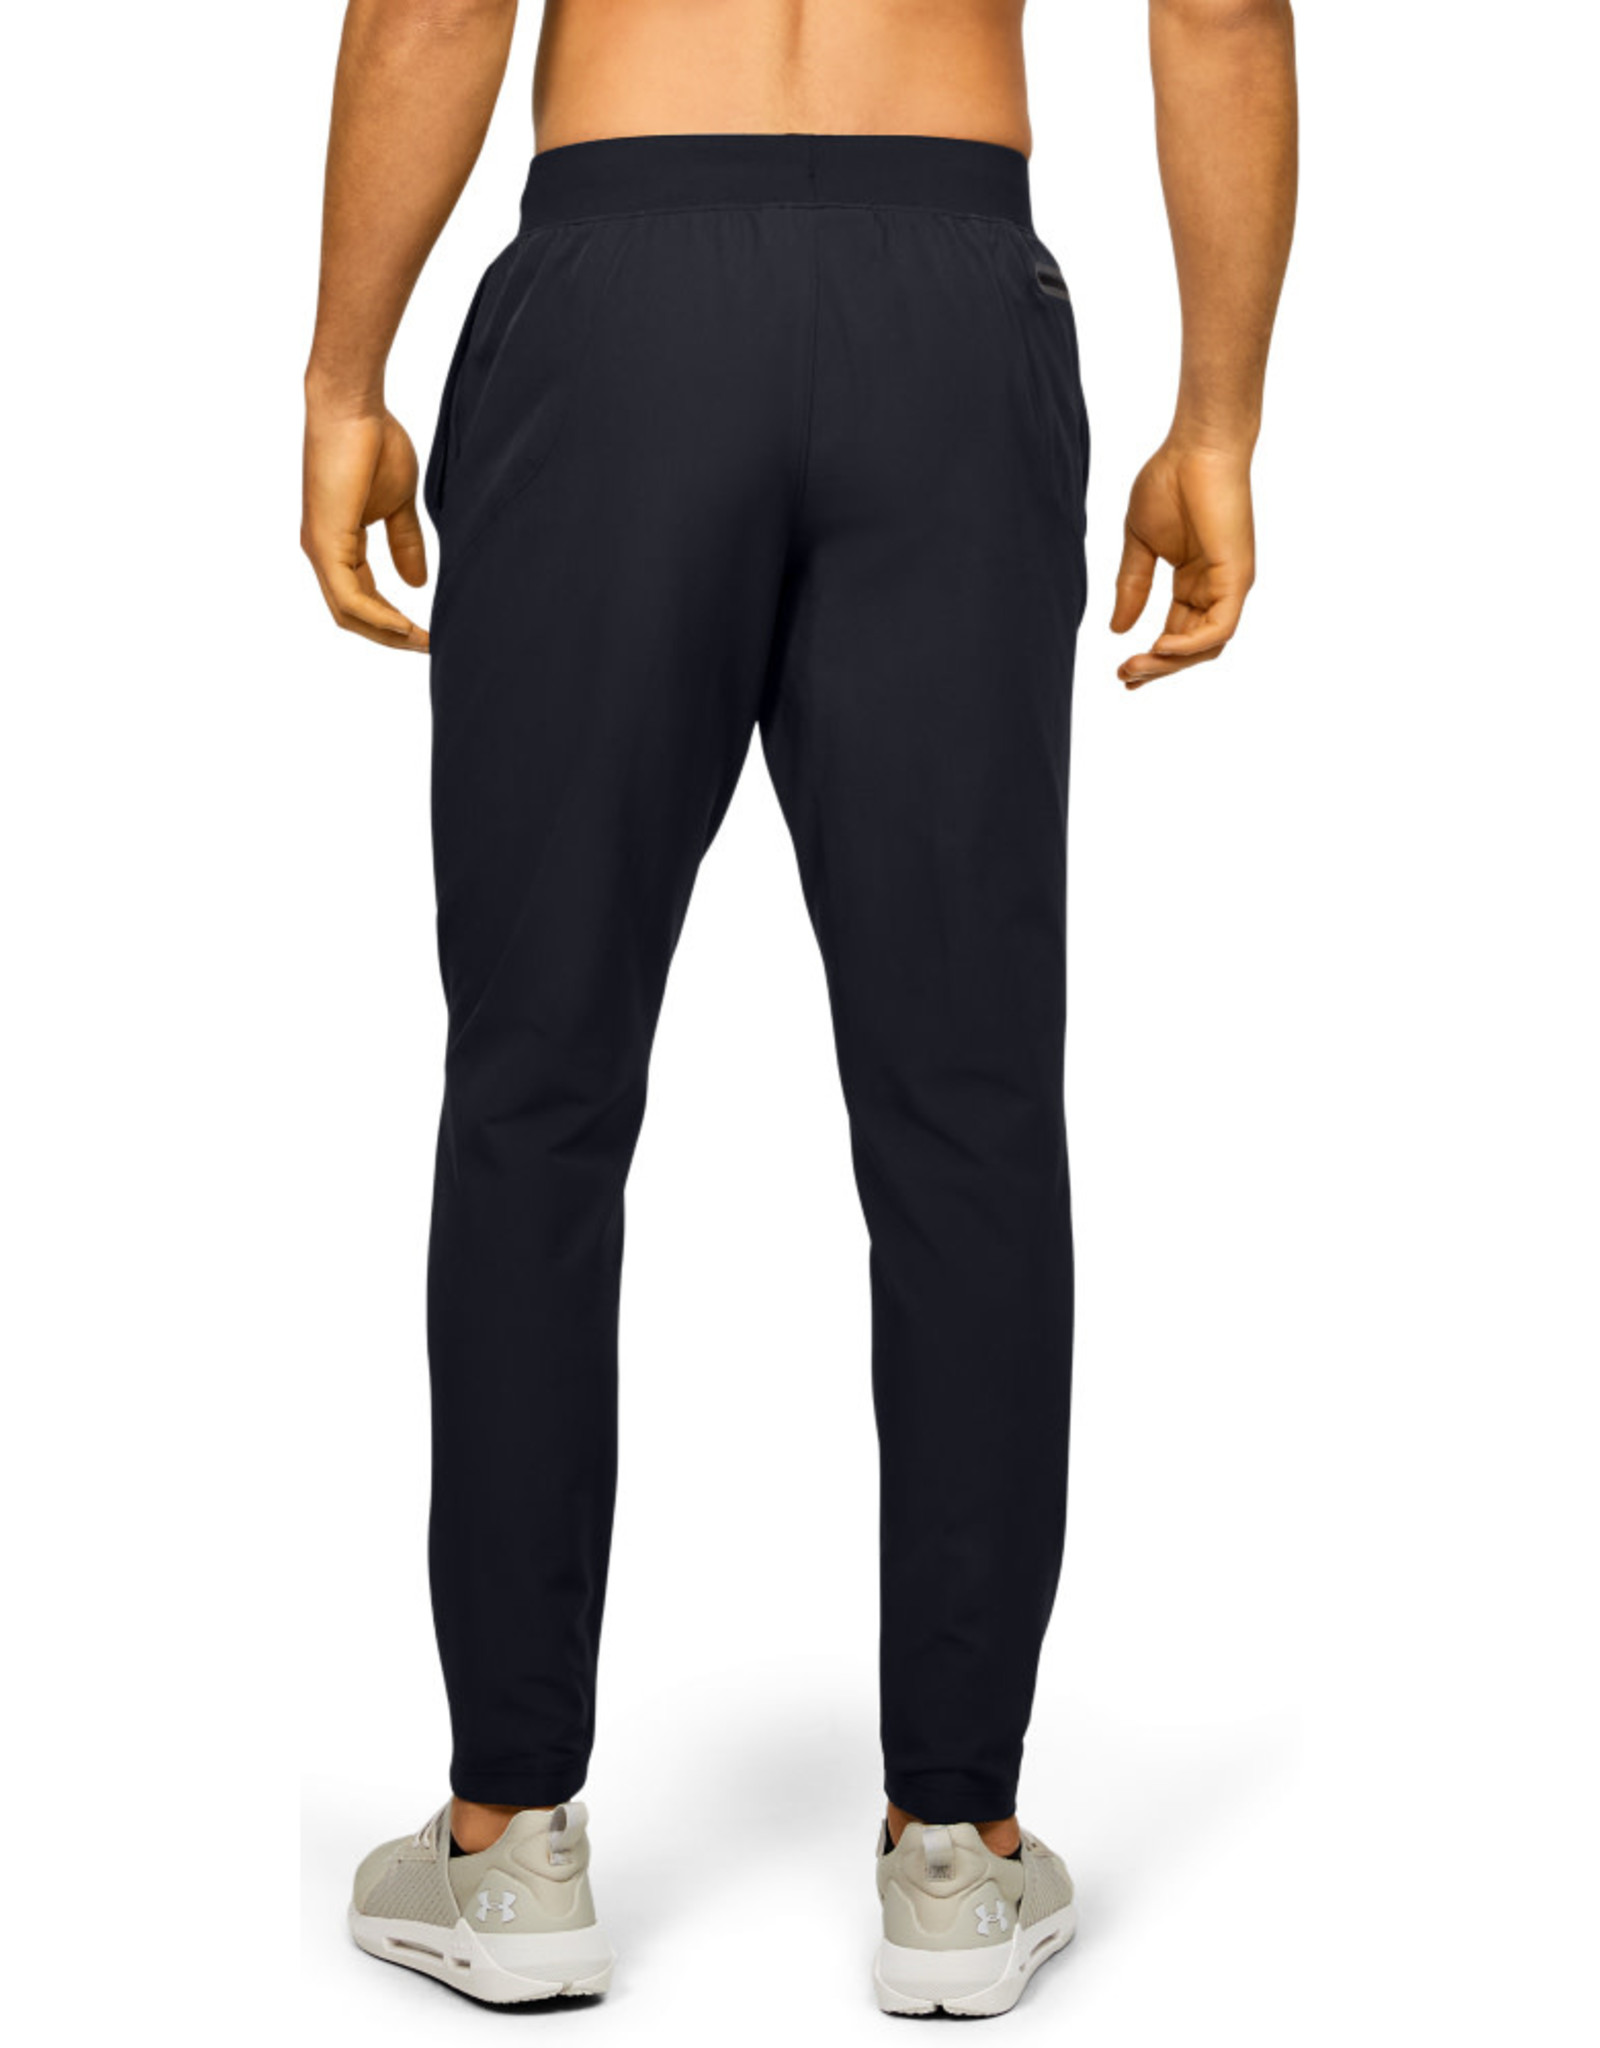 Under Armour UA Unstoppable Tapered Pants - Black